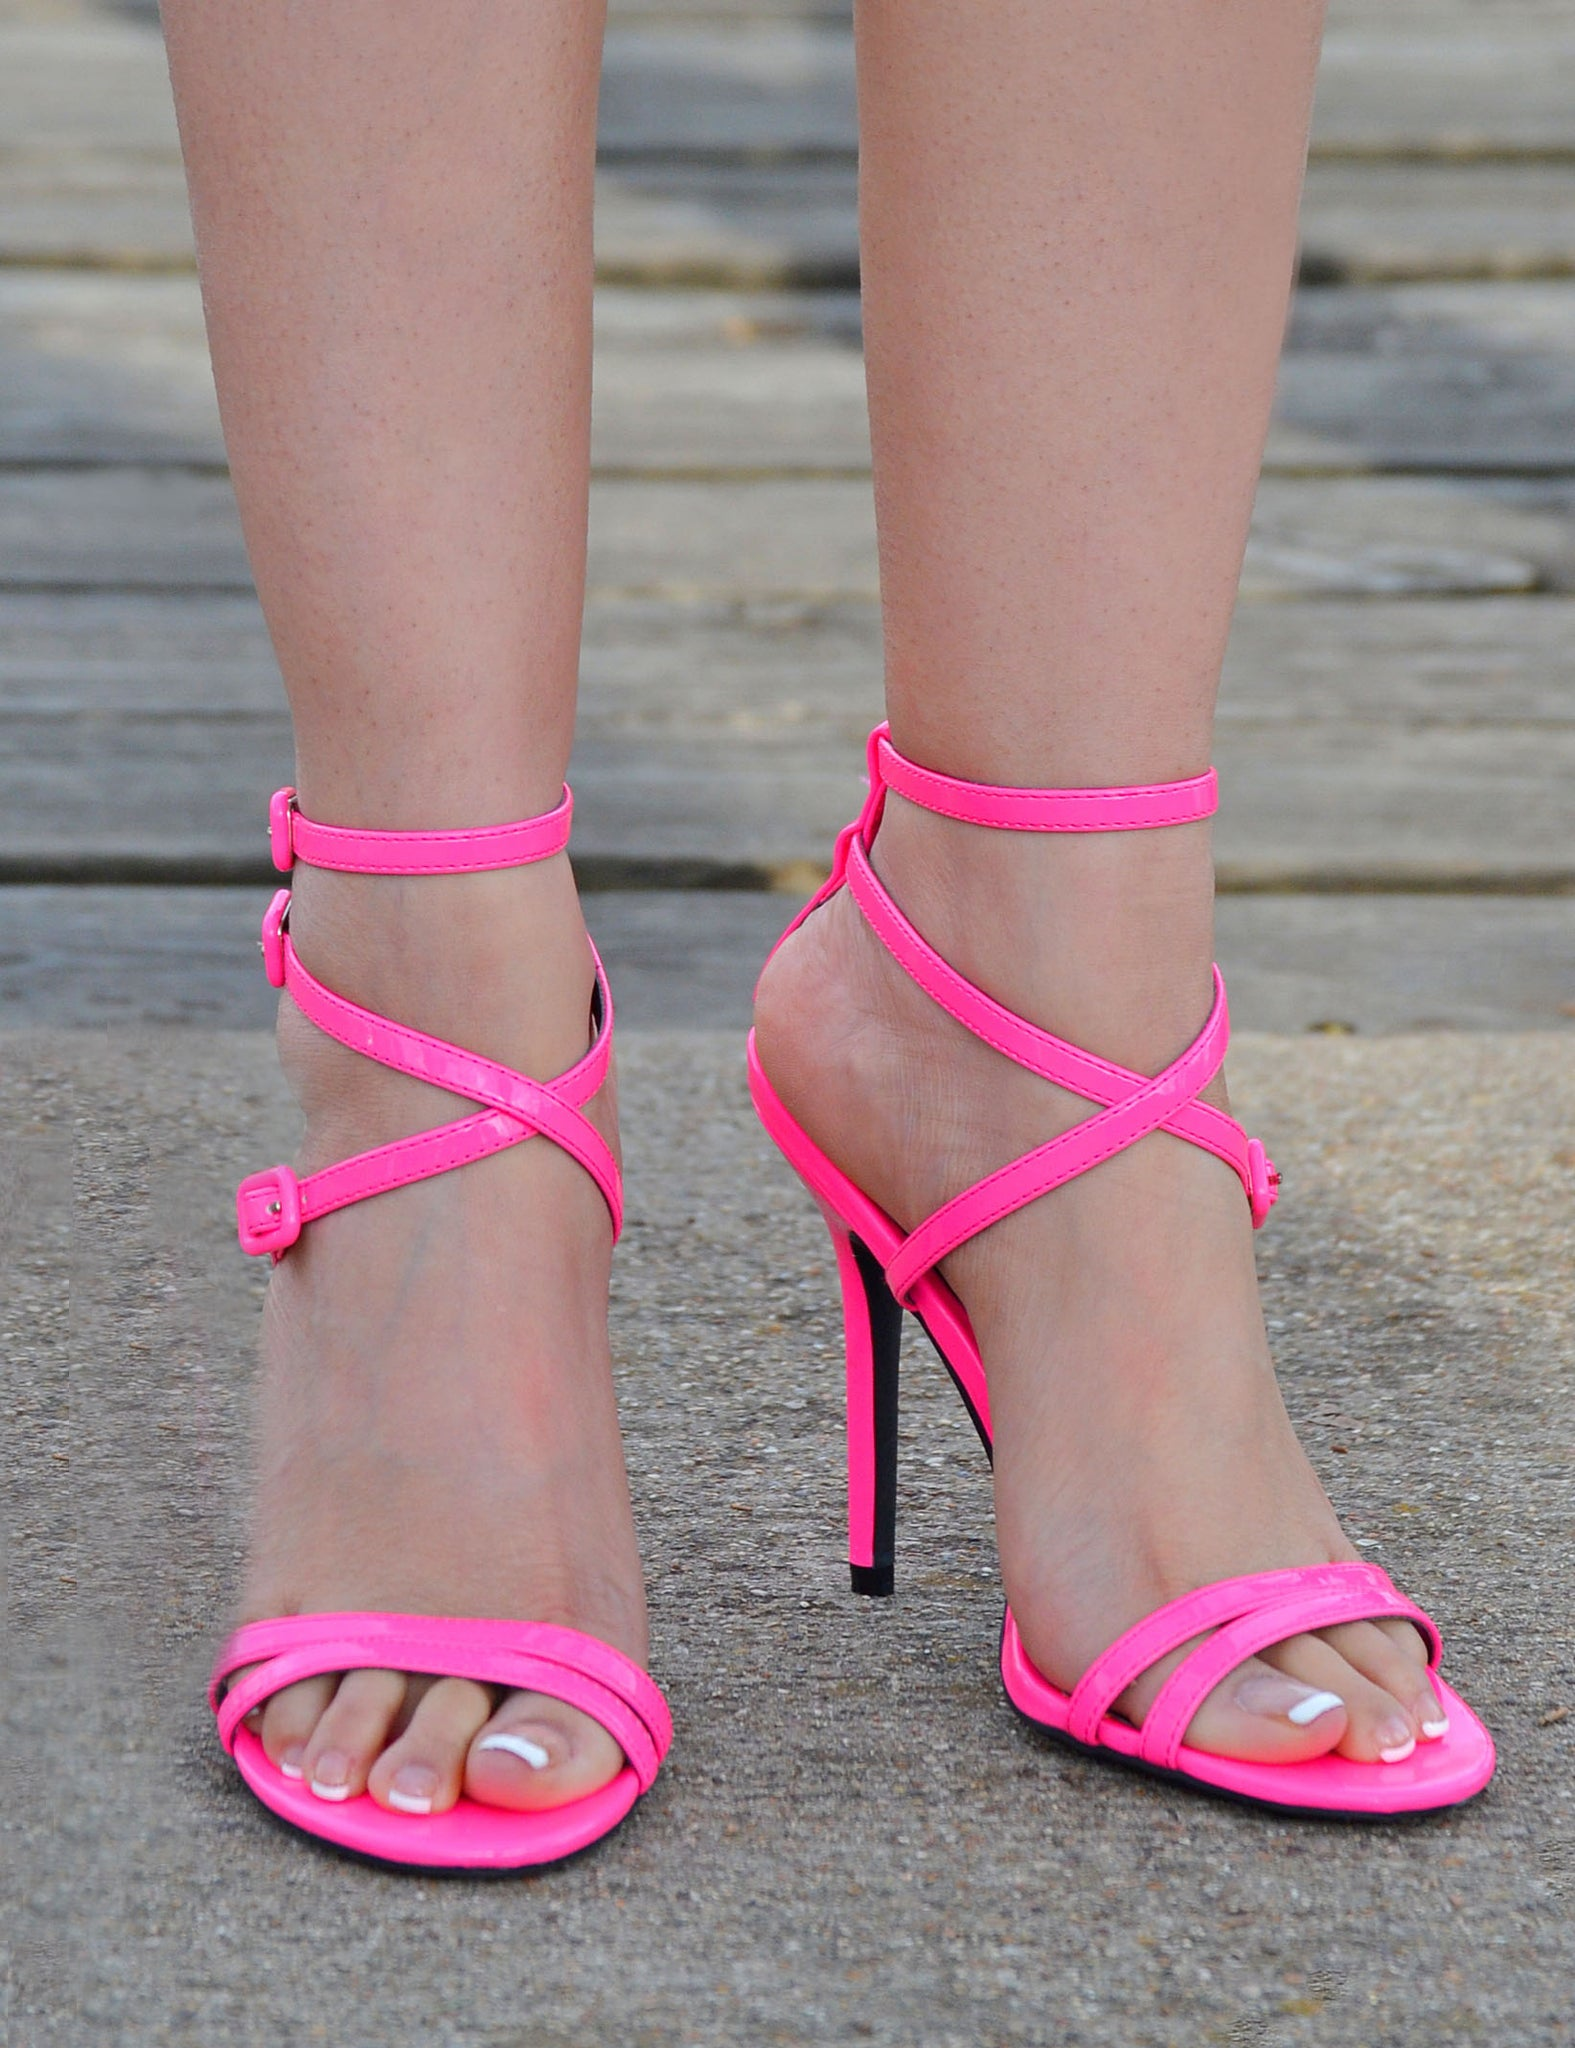 Women's Open Toe Sexy Stiletto High Heels - Neon Pink